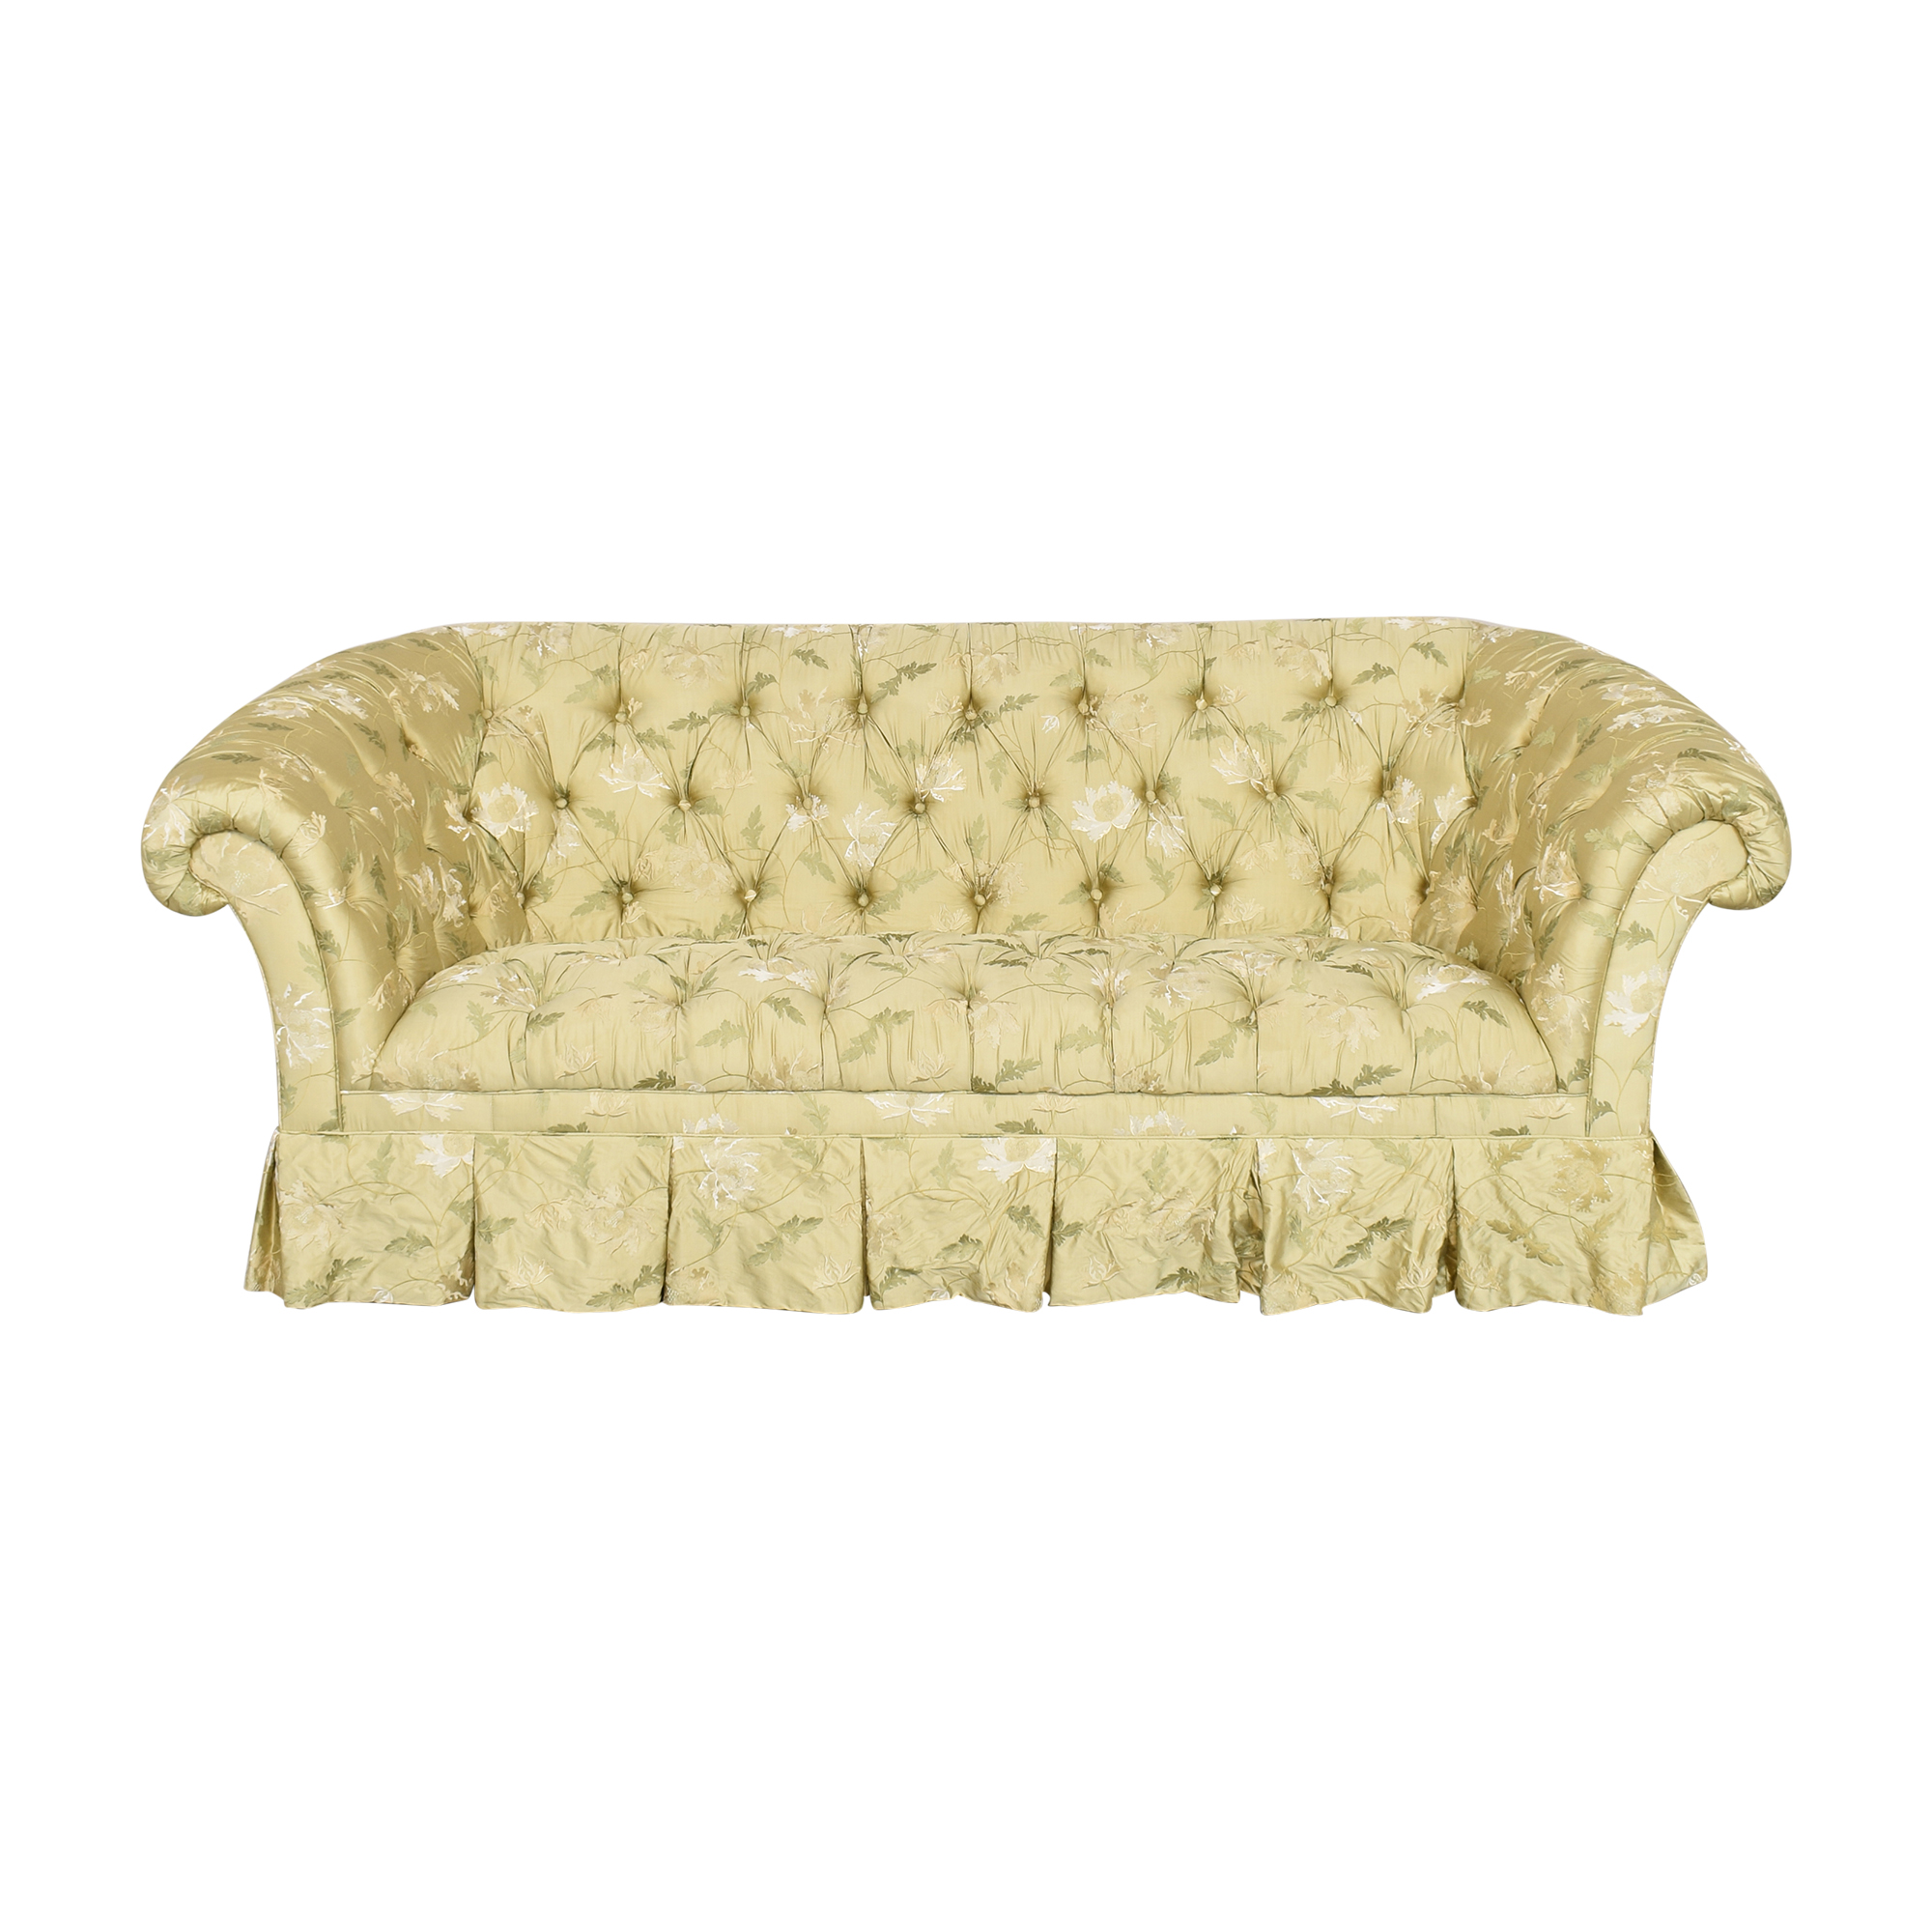 Lillian August Lillian August Chesterfield Floral Sofa ct